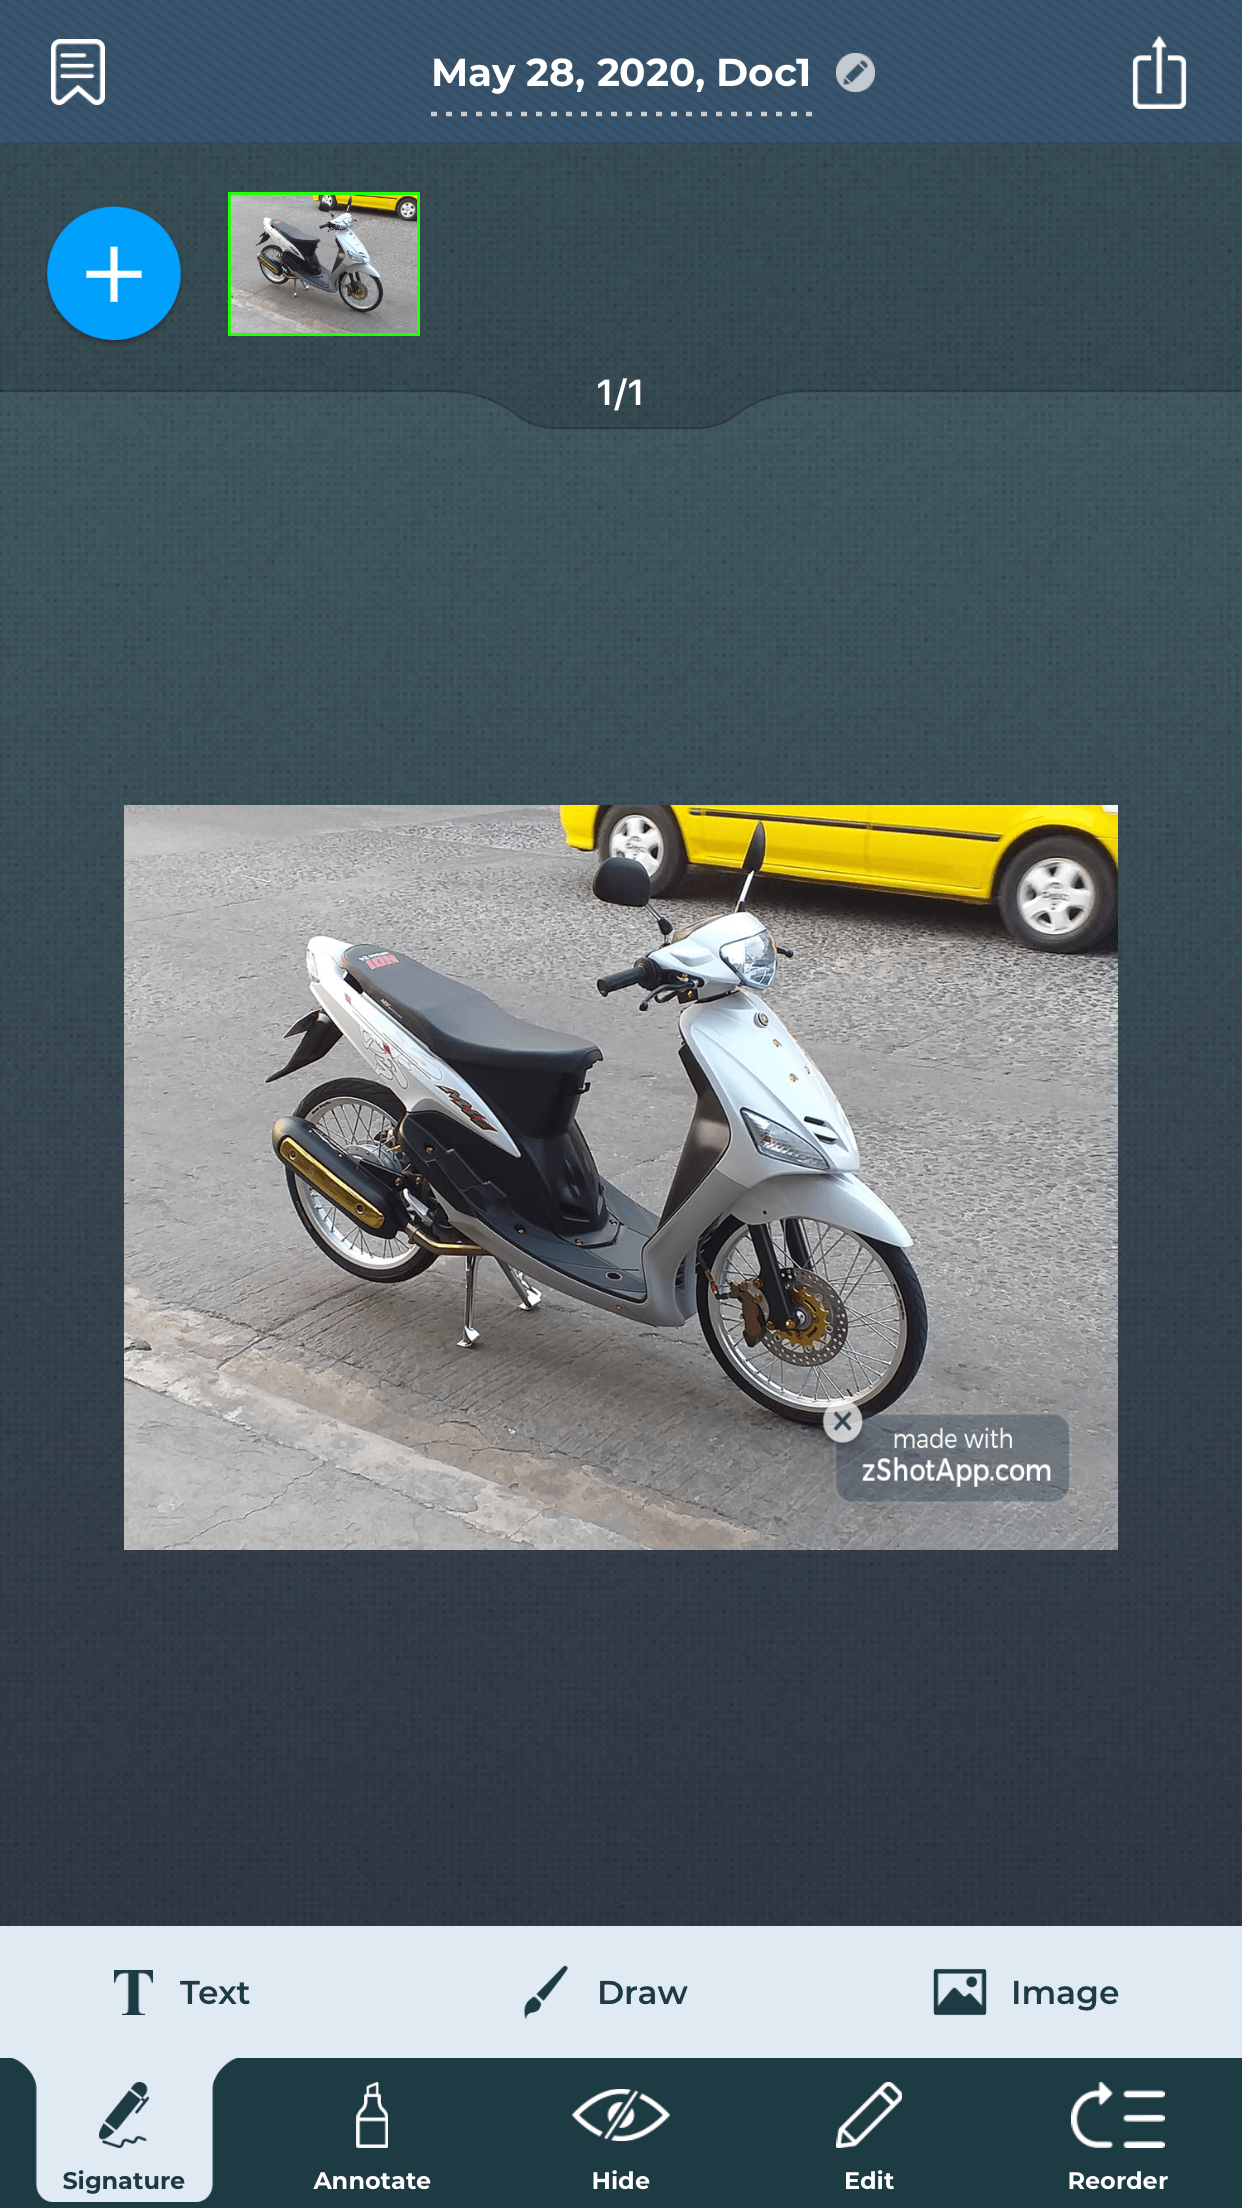 photo of a motorbike -  scan documents on iPhone